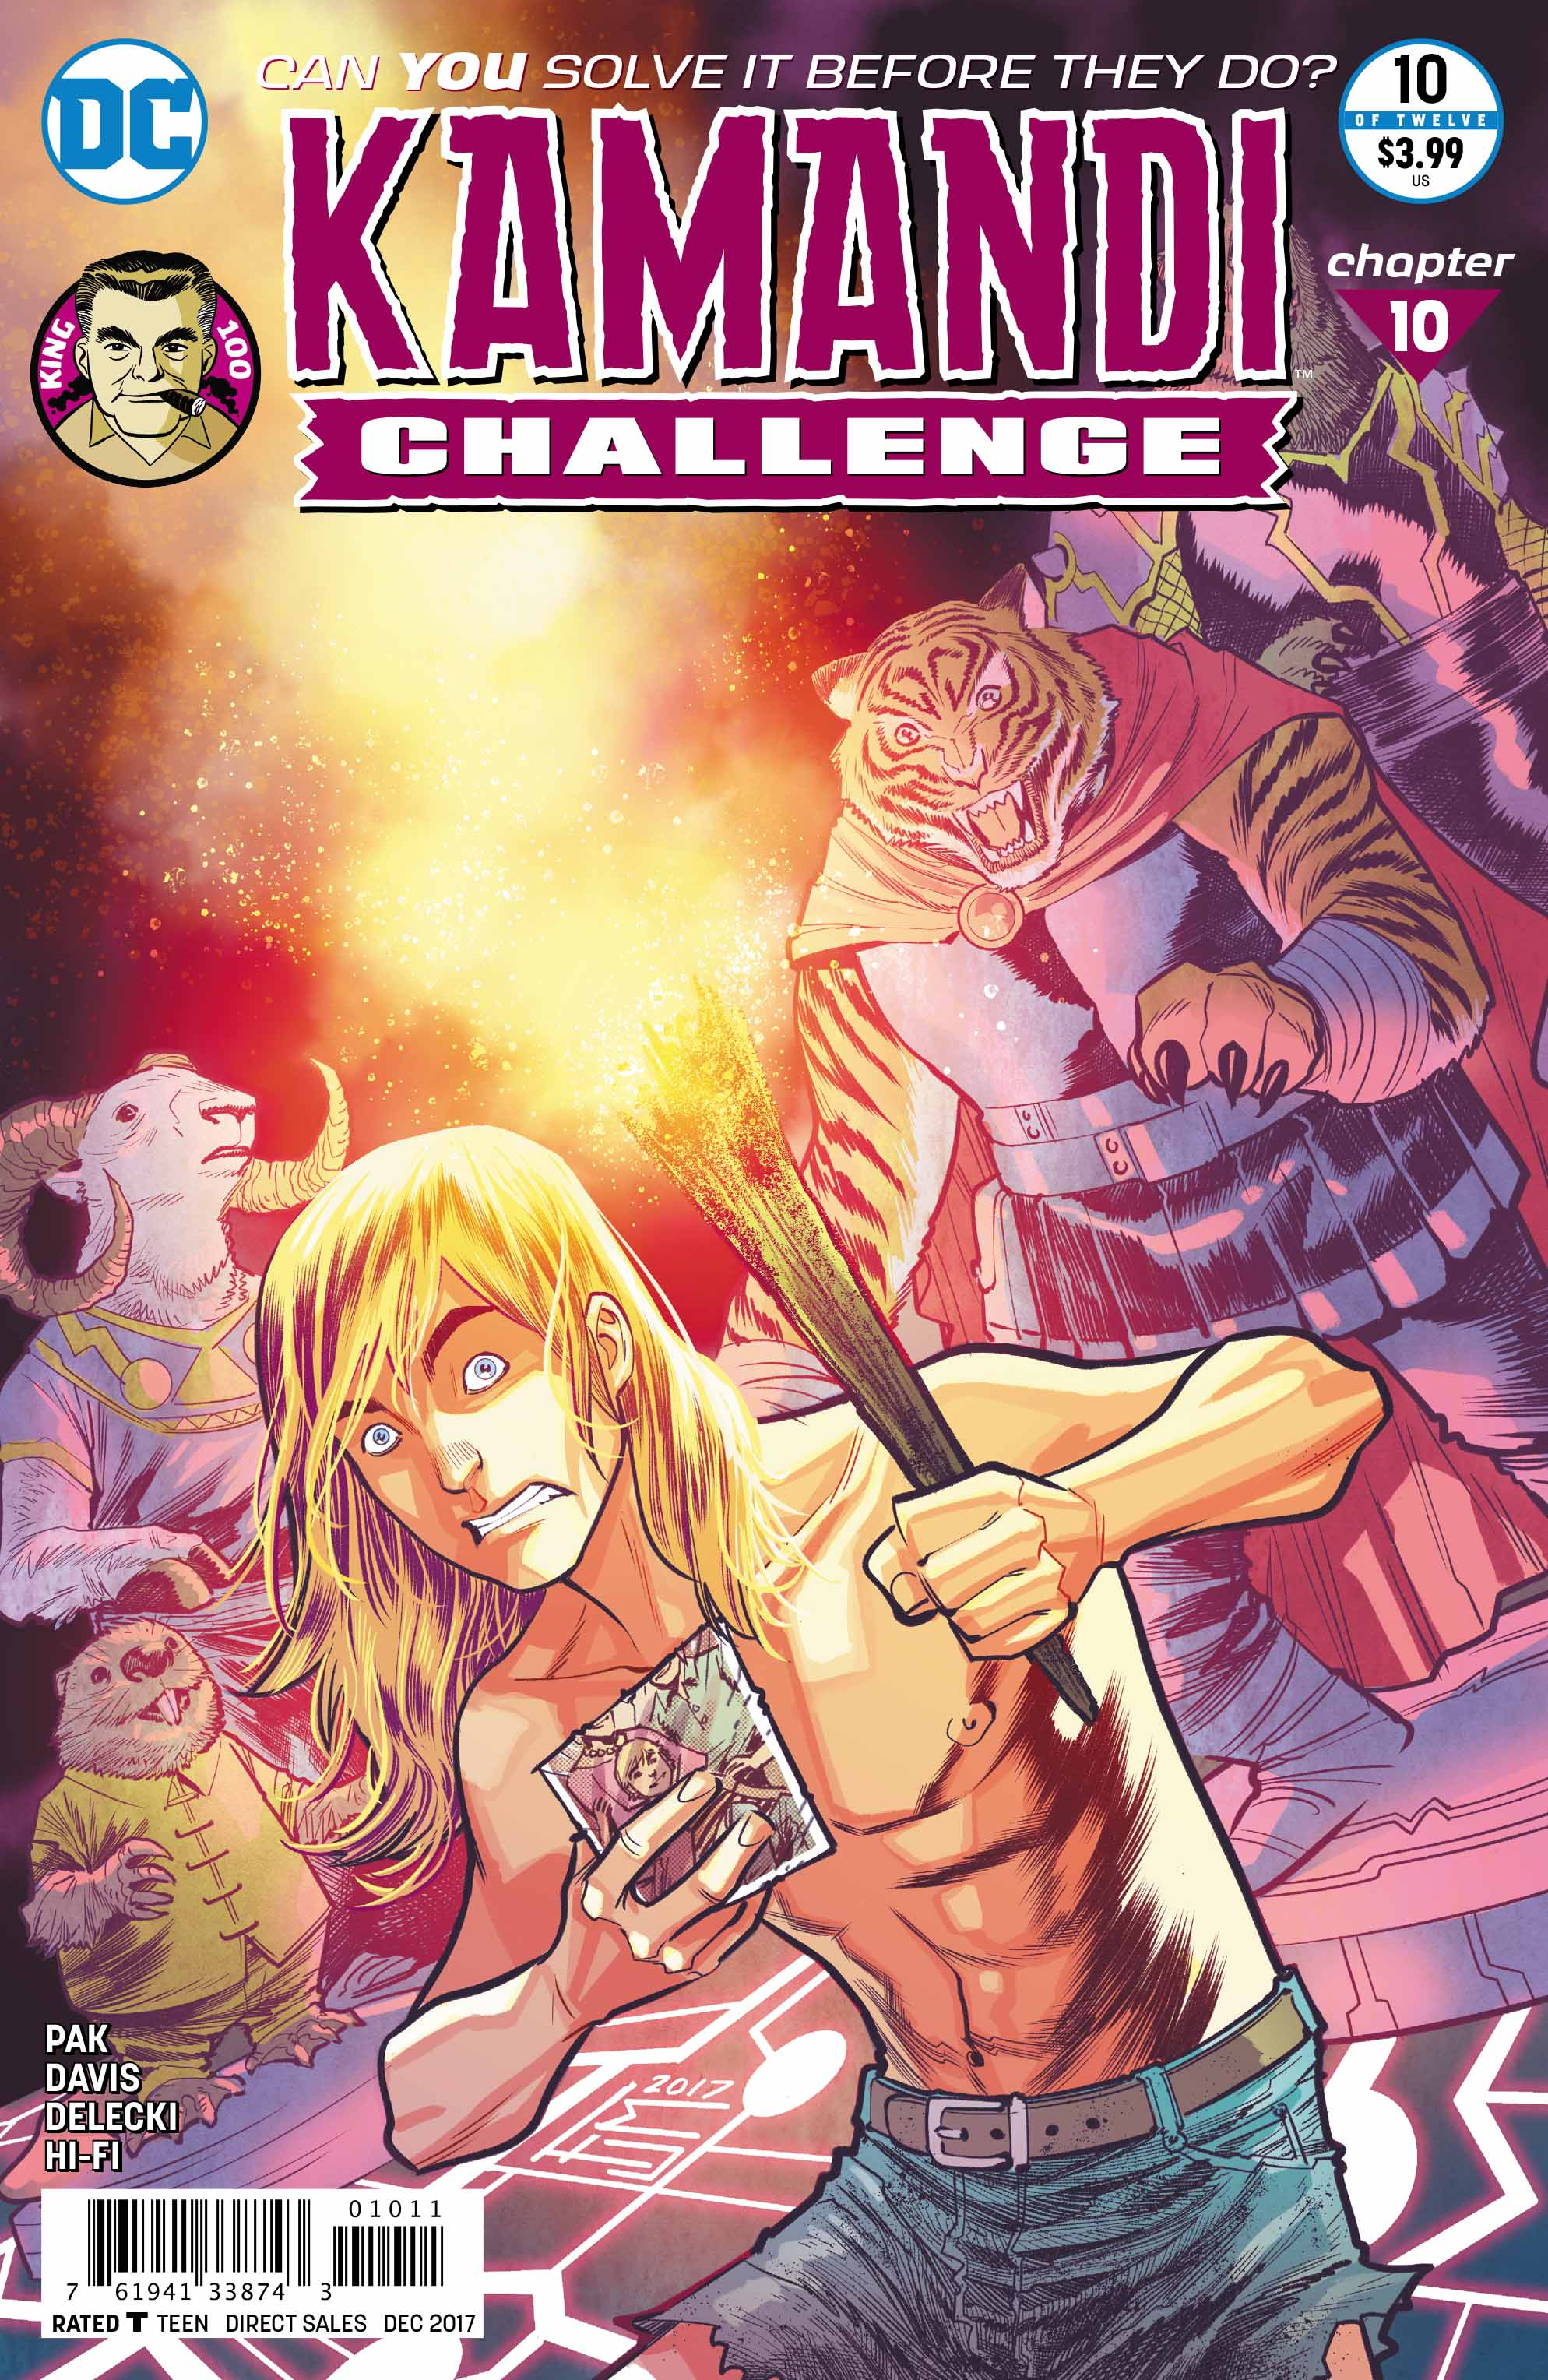 Exclusive Preview: The Kamandi Challenge #10 Unleashes The Beasts